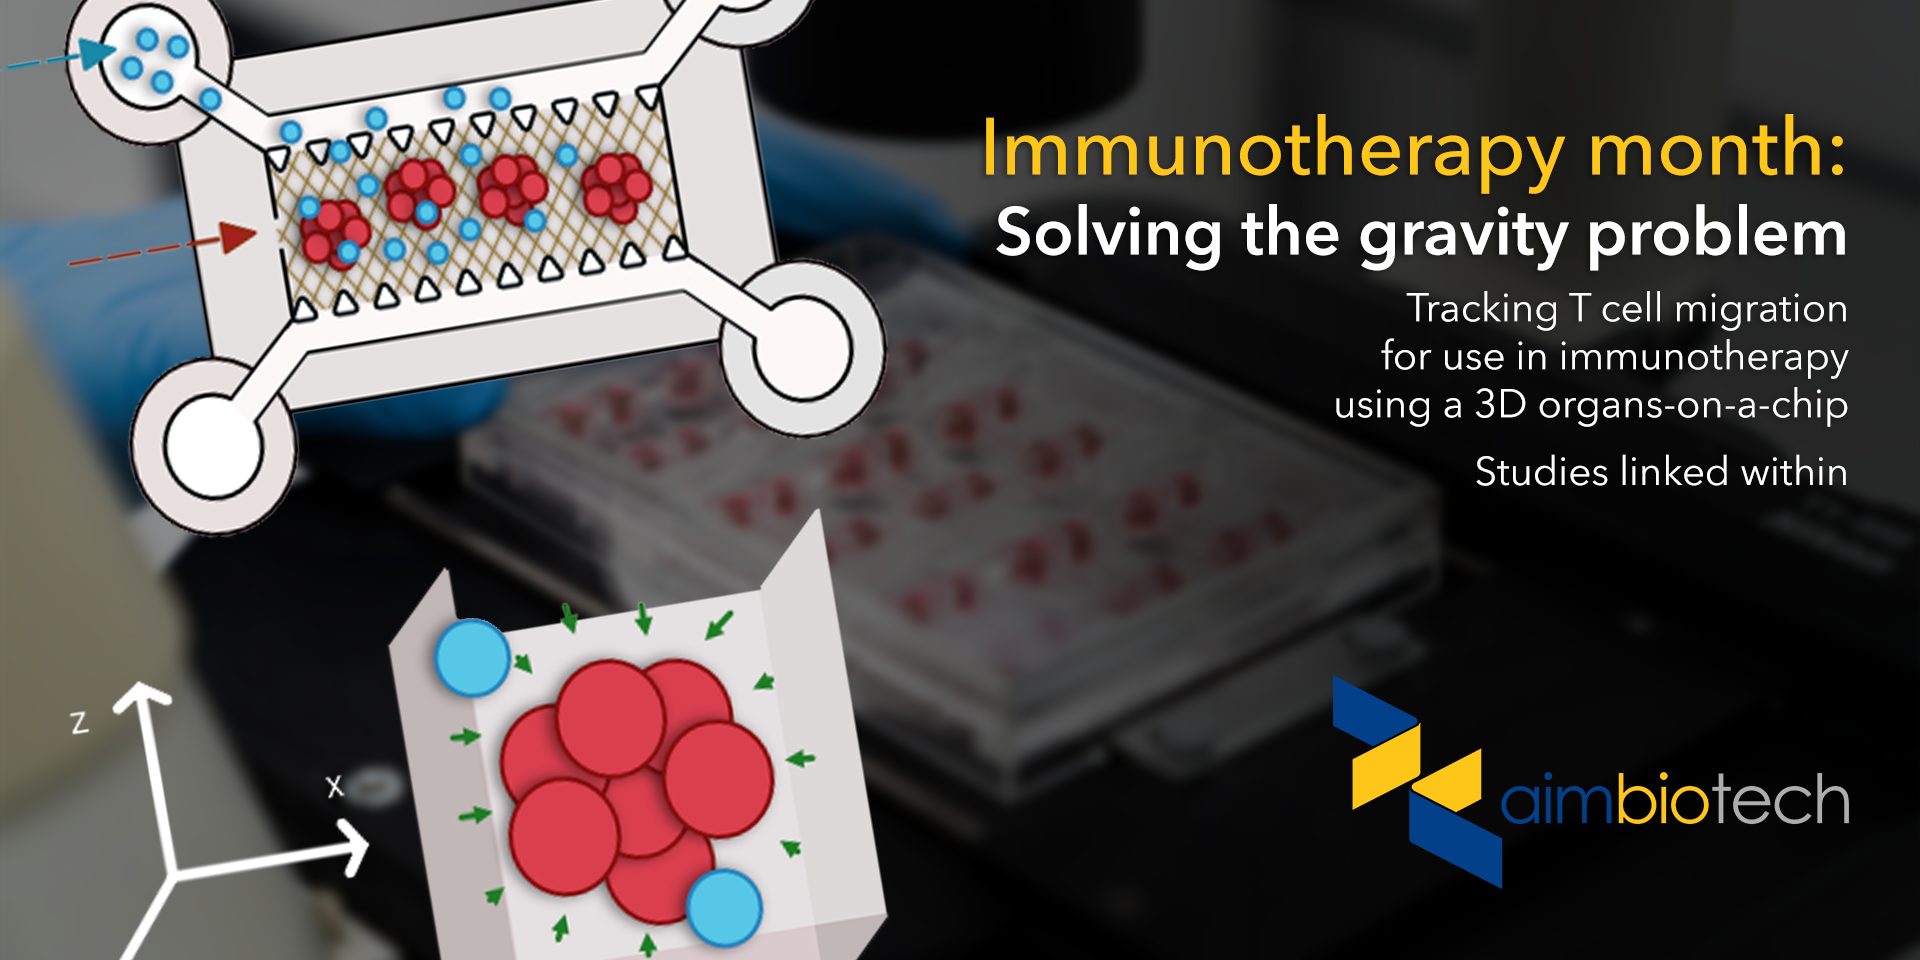 Immunotherapy month: Tracking T cell migration for use in immunotherapy using a 3D organs-on-a-chip